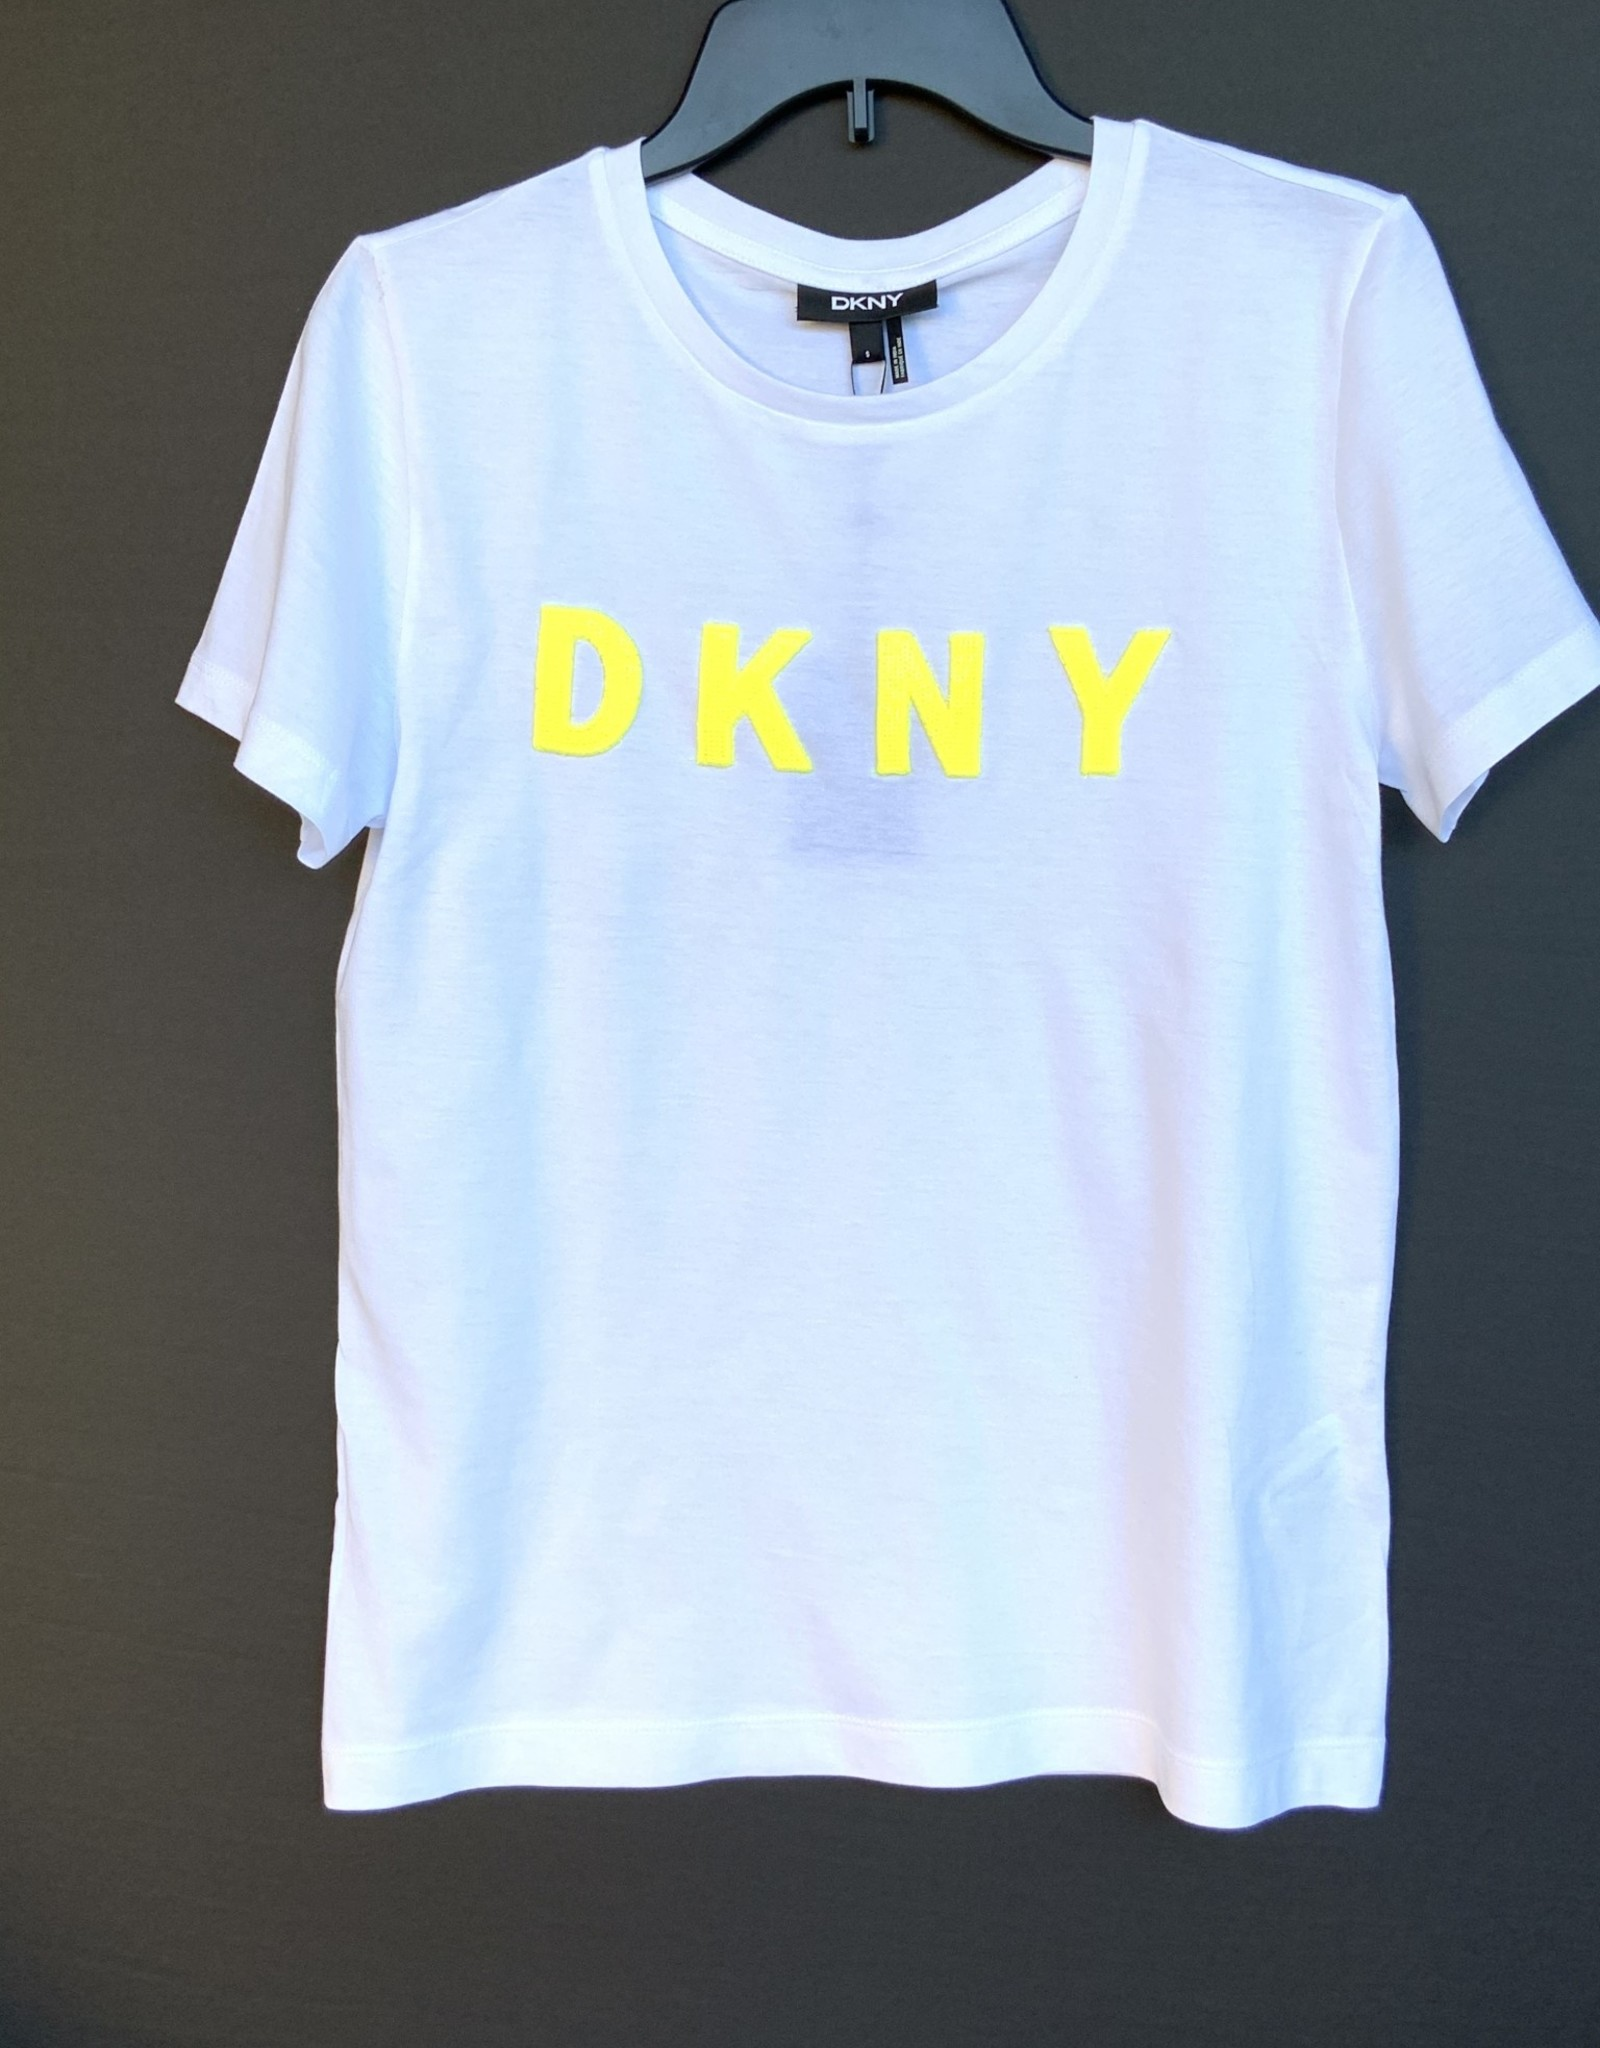 DKNY DKNY Embroidered Sequin Logo T-Shirt